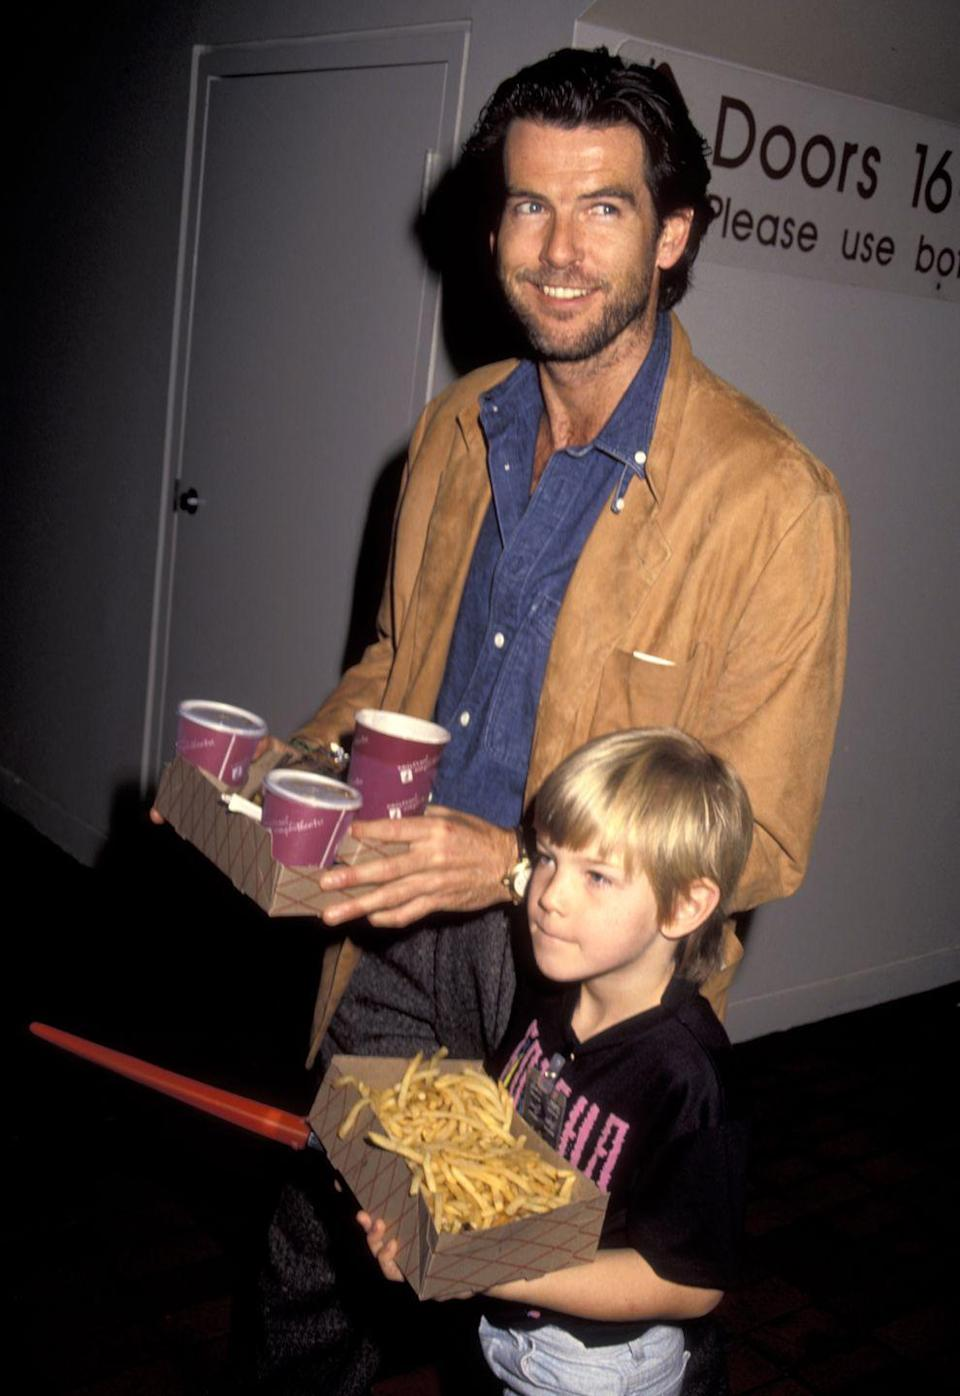 <p>Pierce Brosnan loads up on movie theater snacks with his son Sean during the premiere of <em>Teenage Mutant Ninja Turtles </em>in 1990. </p>